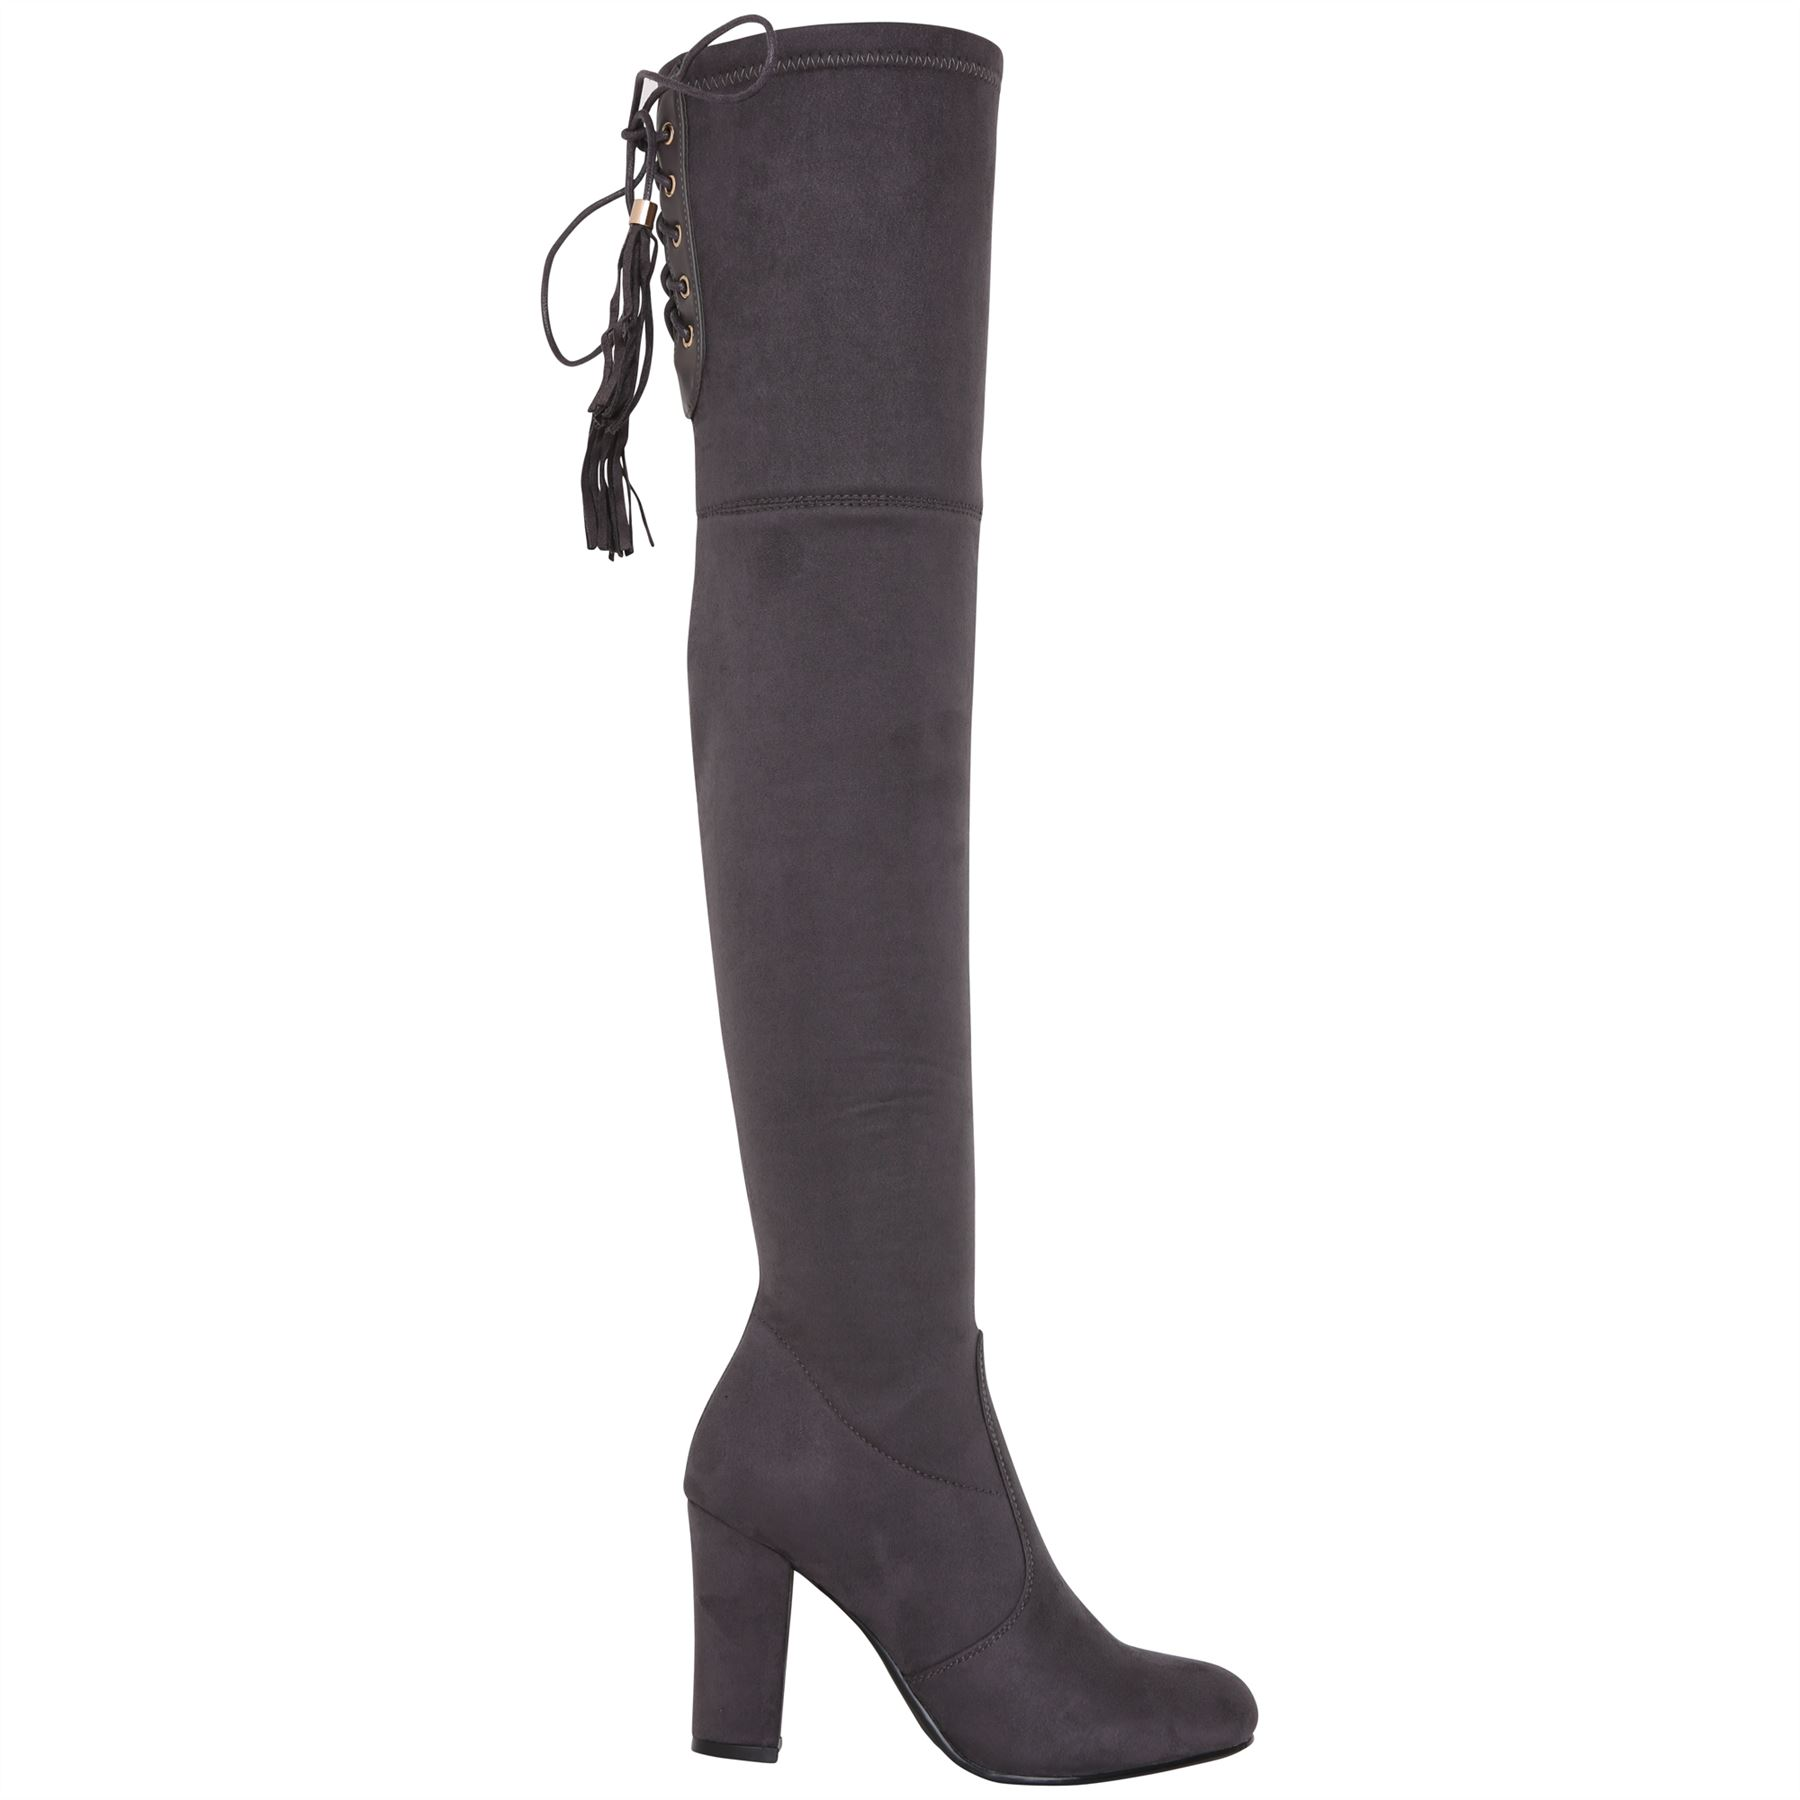 Womens-Over-Knee-High-Boots-Ladies-Low-Block-Heel-Riding-Stretch-Winter-Shoes miniatura 14